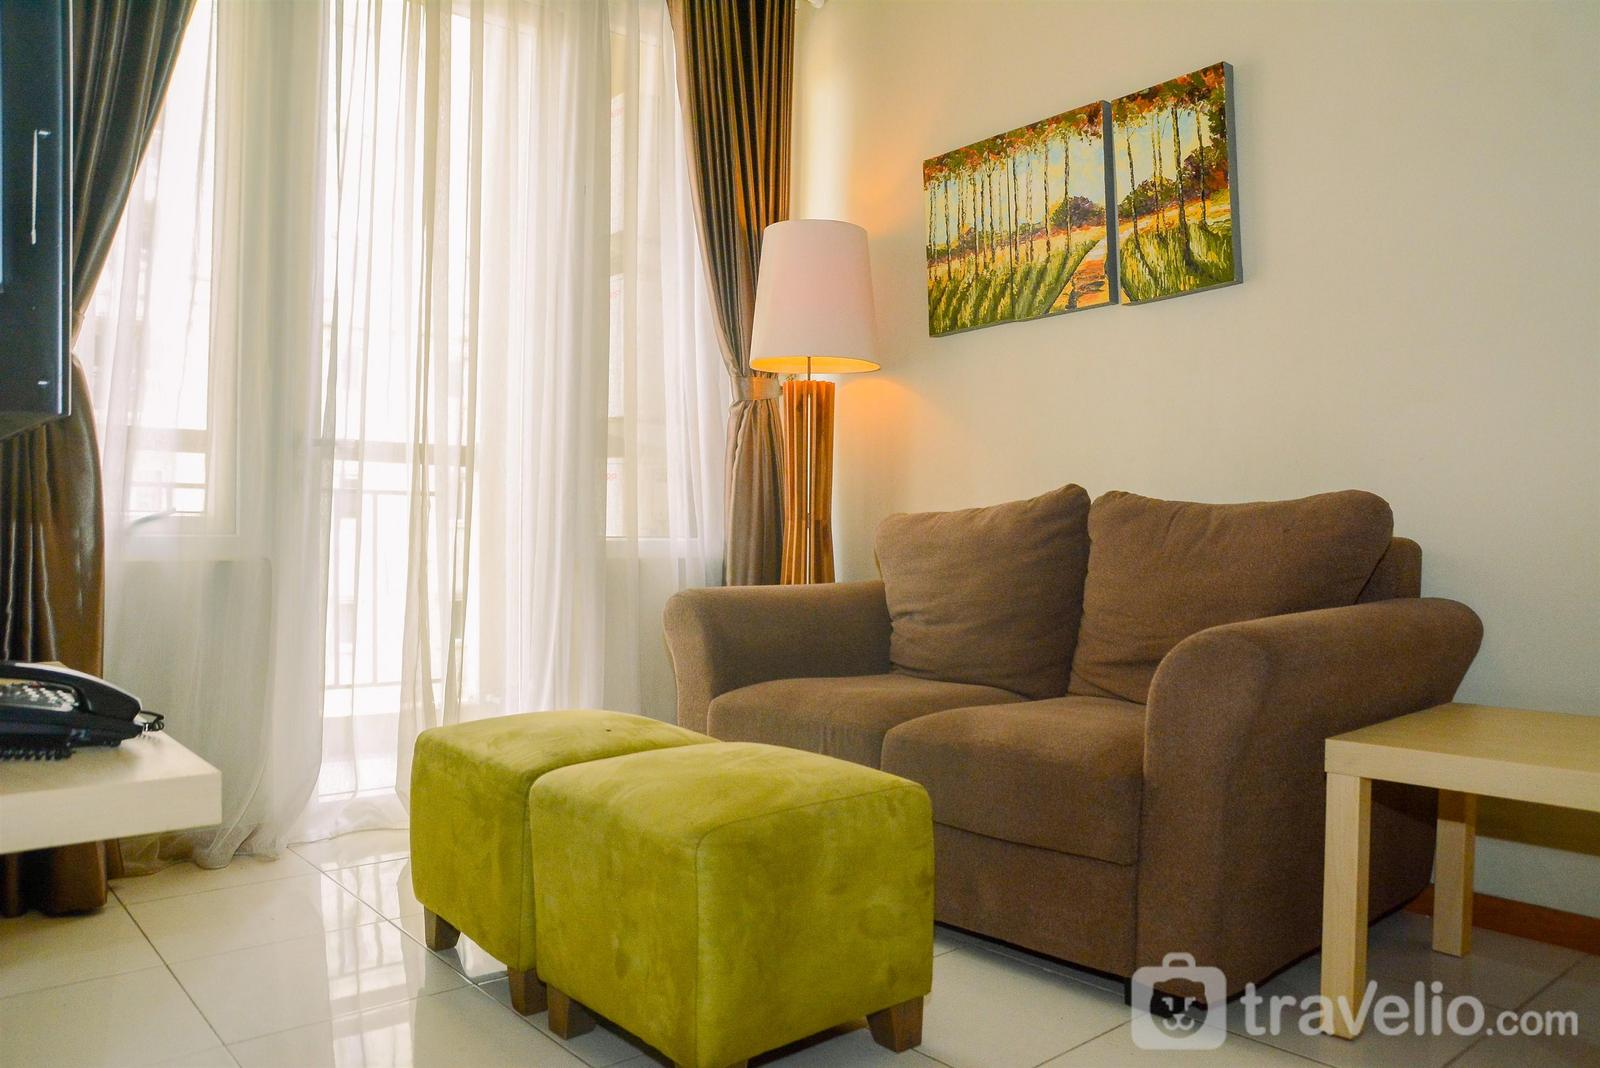 Grand Palace Kemayoran - 3BR Business Residence at Grand Palace Kemayoran By Travelio